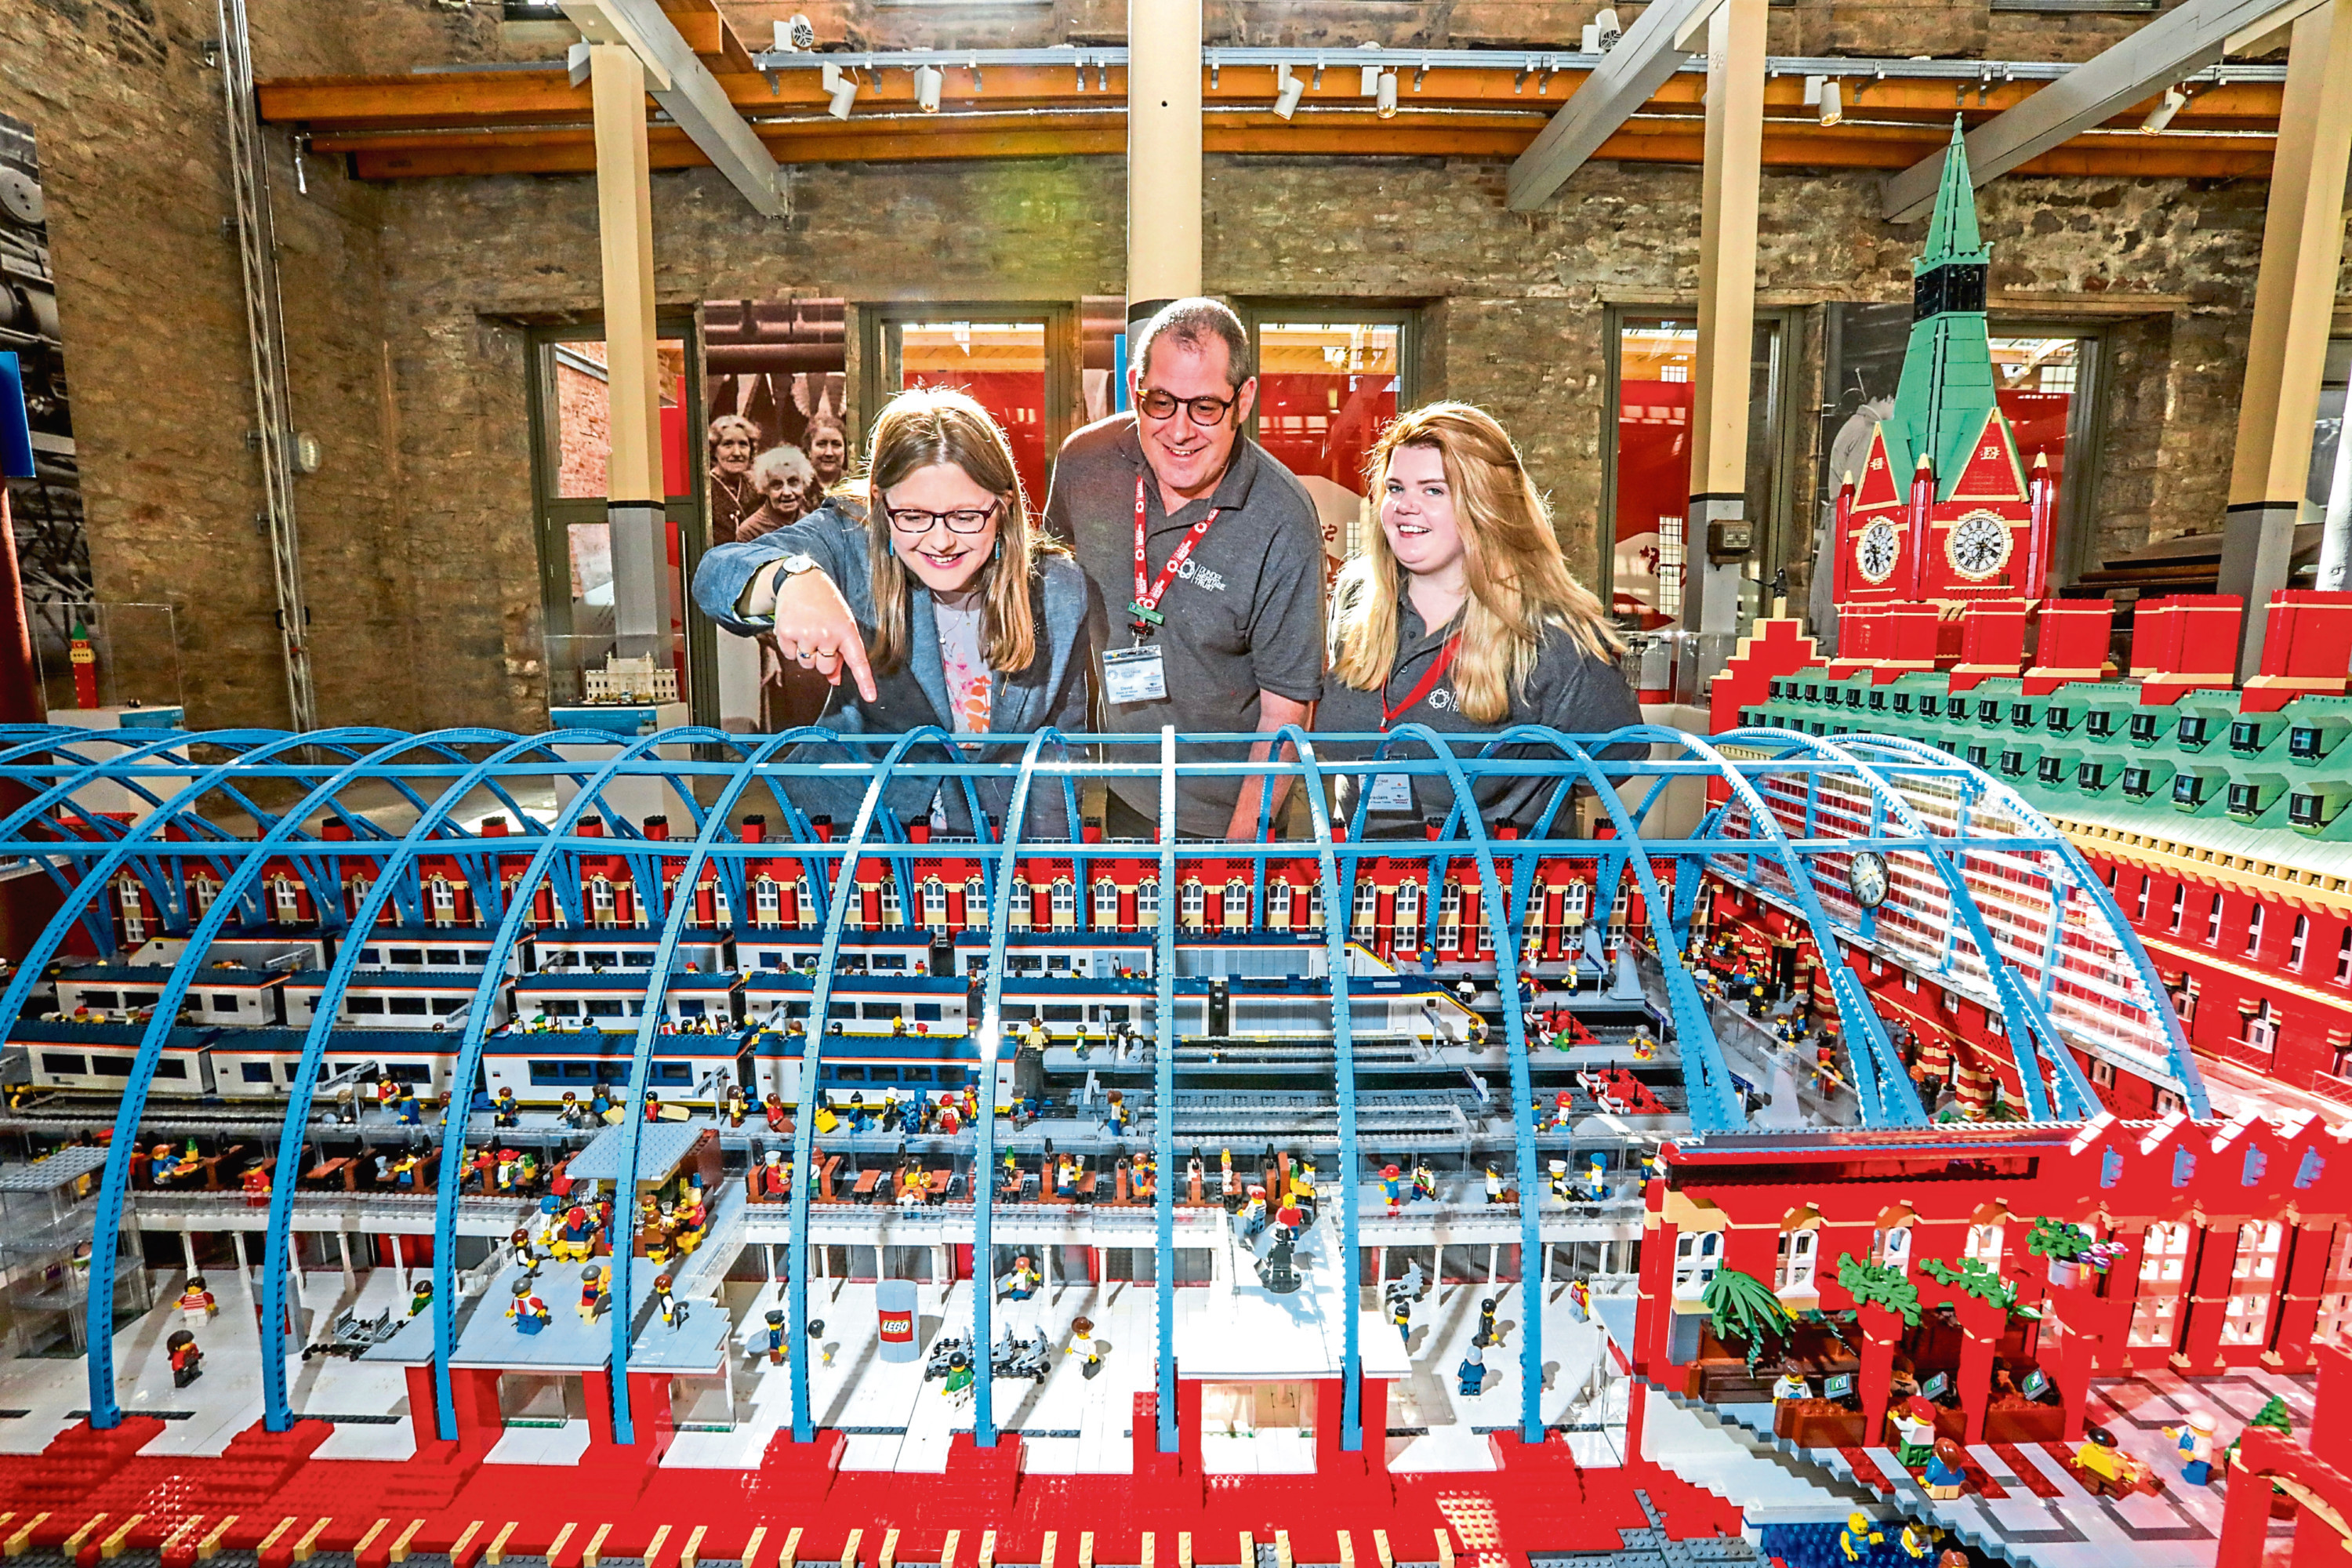 Picture shows, from left, Gill Poulter (heritage director of Dundee Heritage Trust) alongside David Reid and Marieclaire White (both Dundee Heritage Trust / Verdant Works), admiring the model of St Pancras station